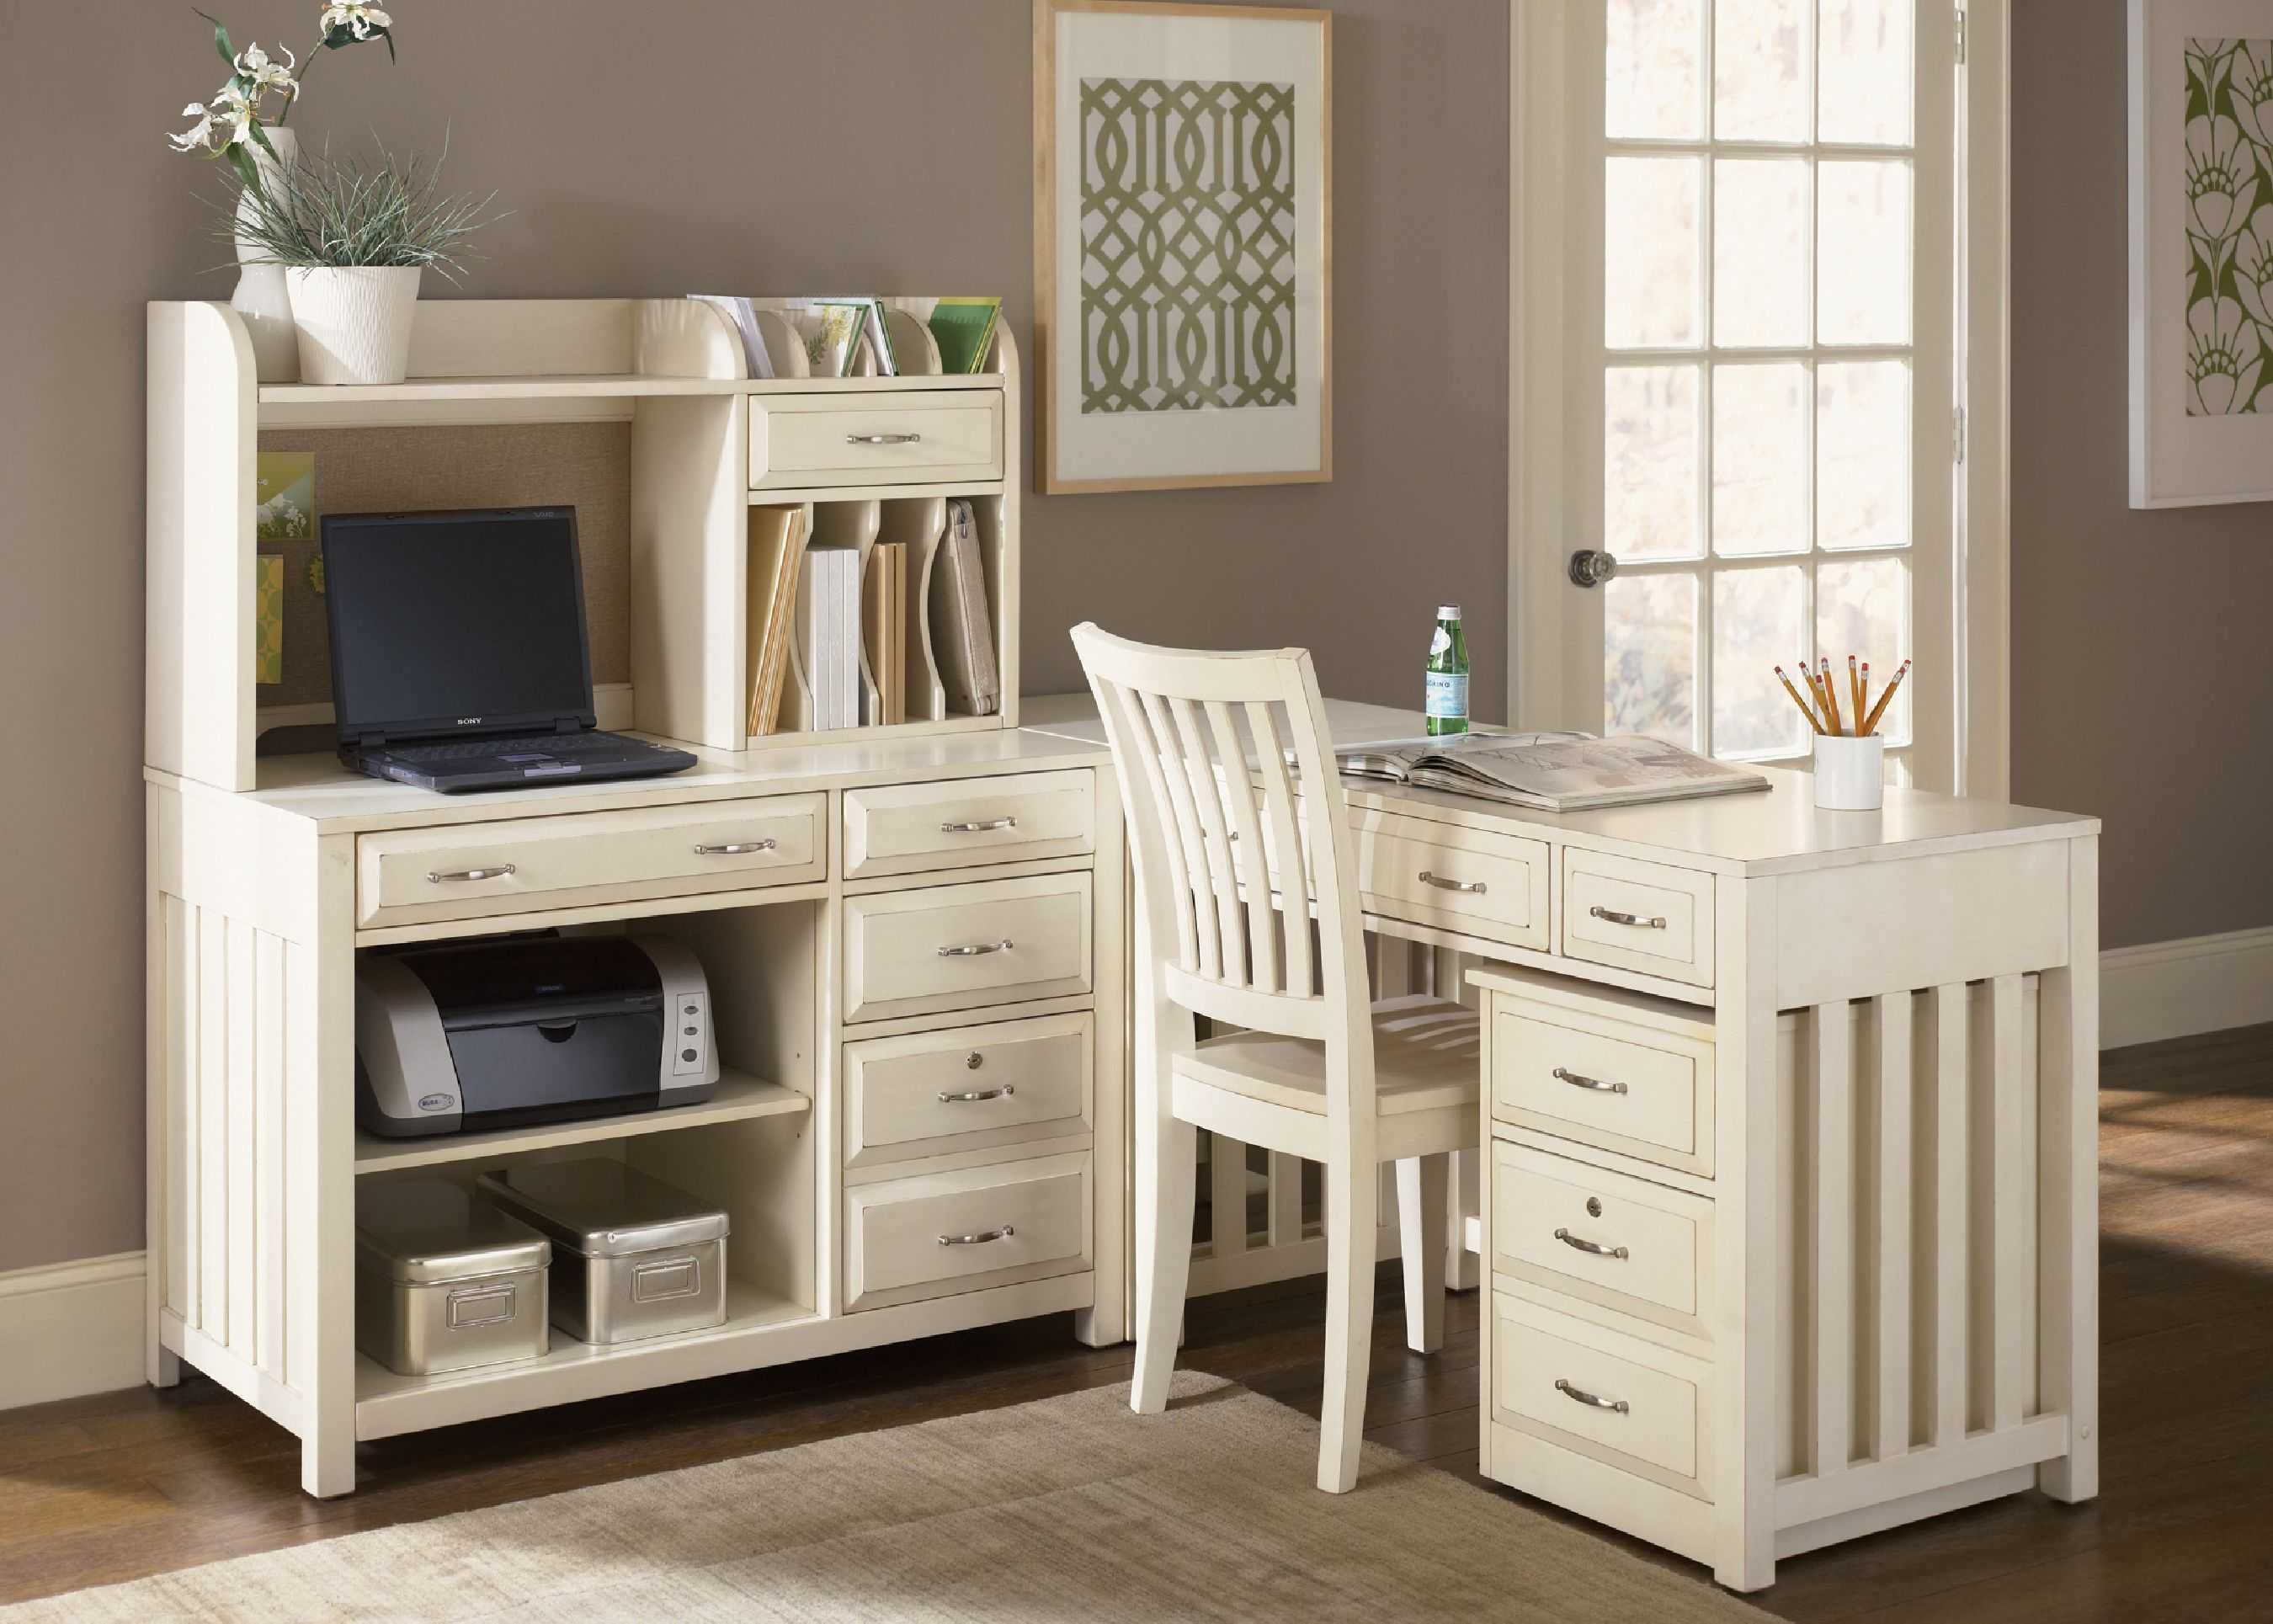 work desk ideas white office. decorating ideas workspace with a small corner table and drawers office designs for spaces work desk white